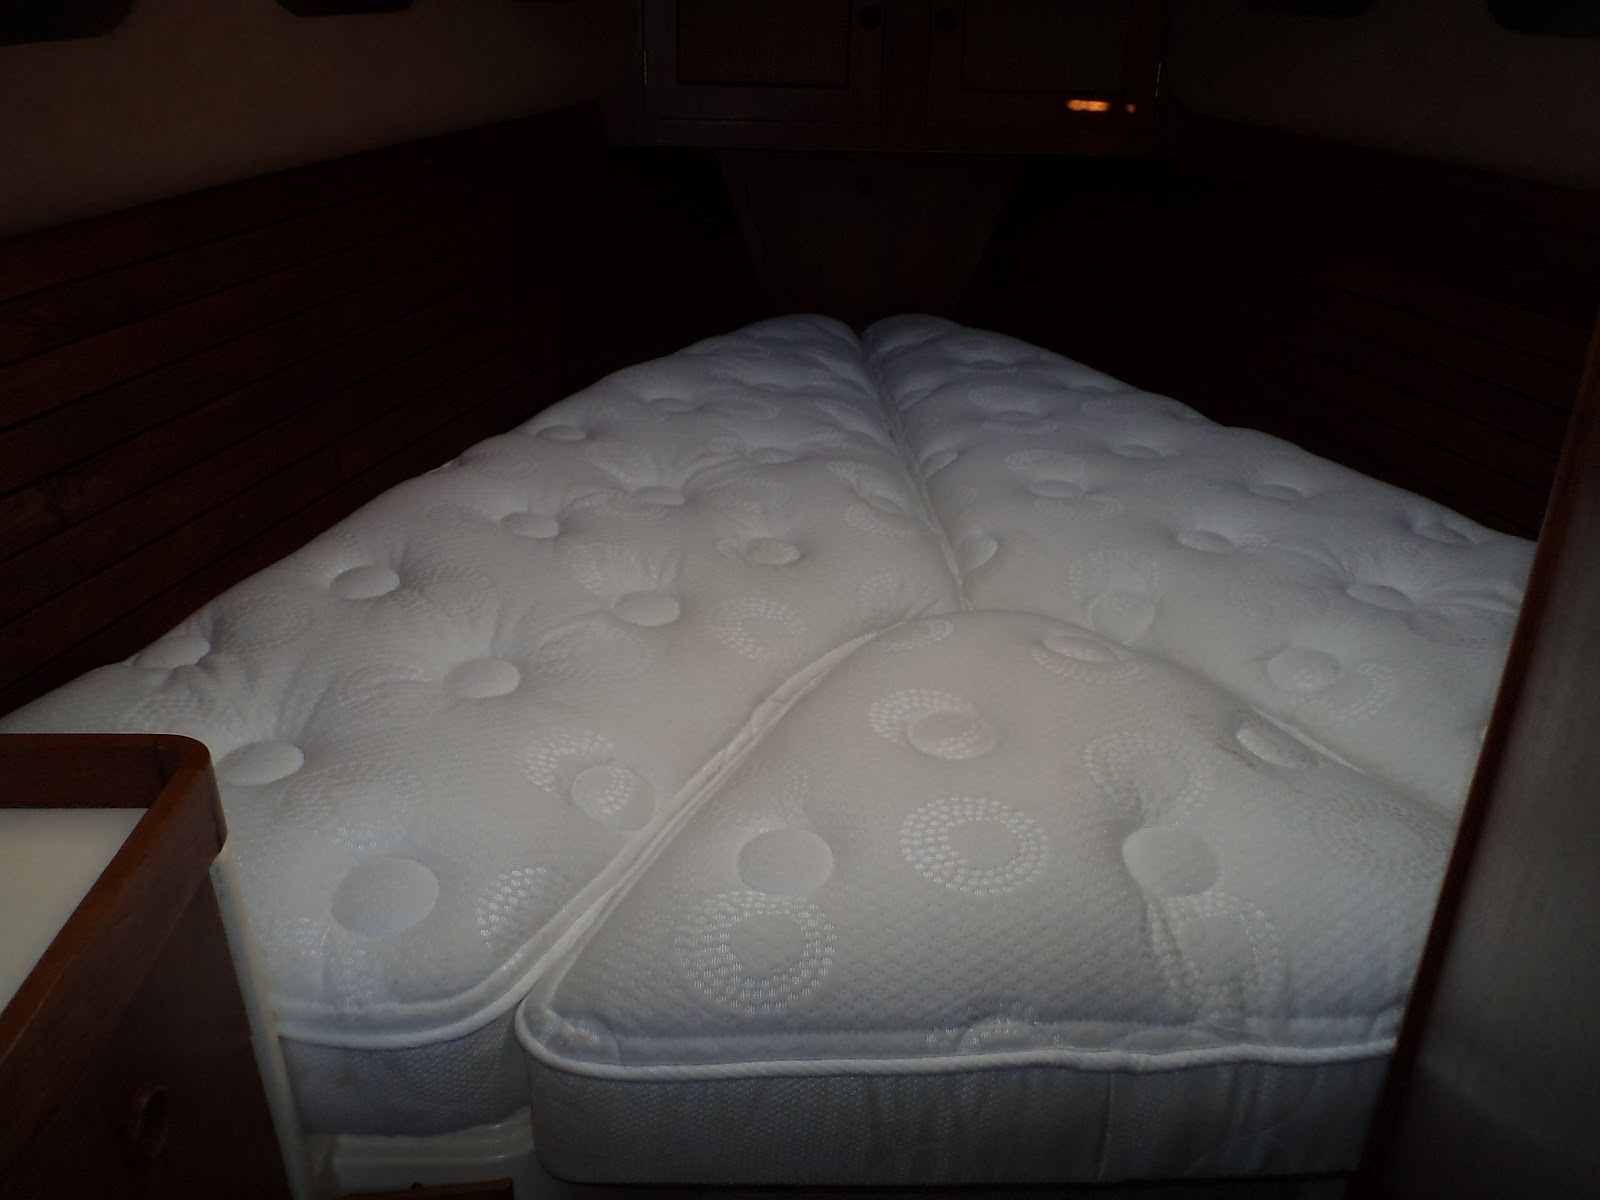 Mattress Covers For Bed Bugs Amazon